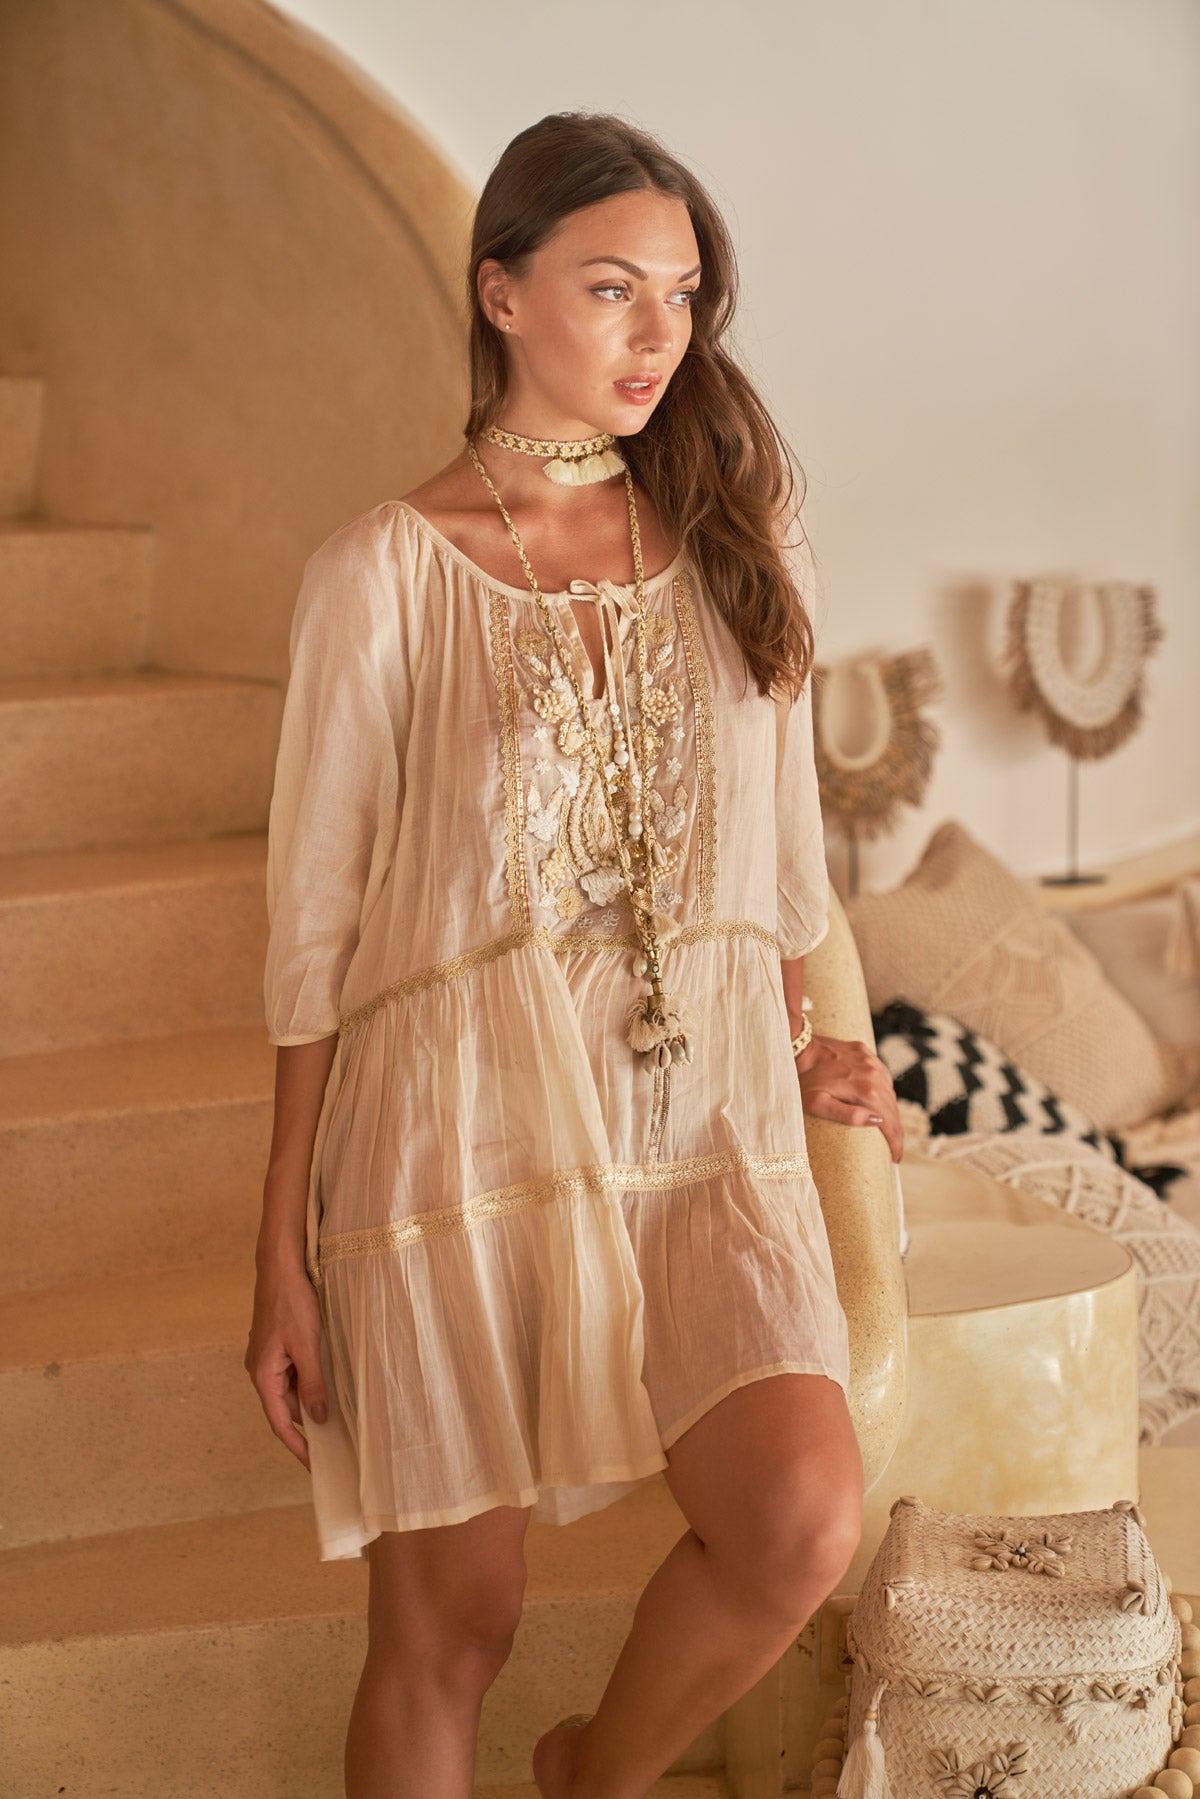 Boho style ecru short dress with embroidery